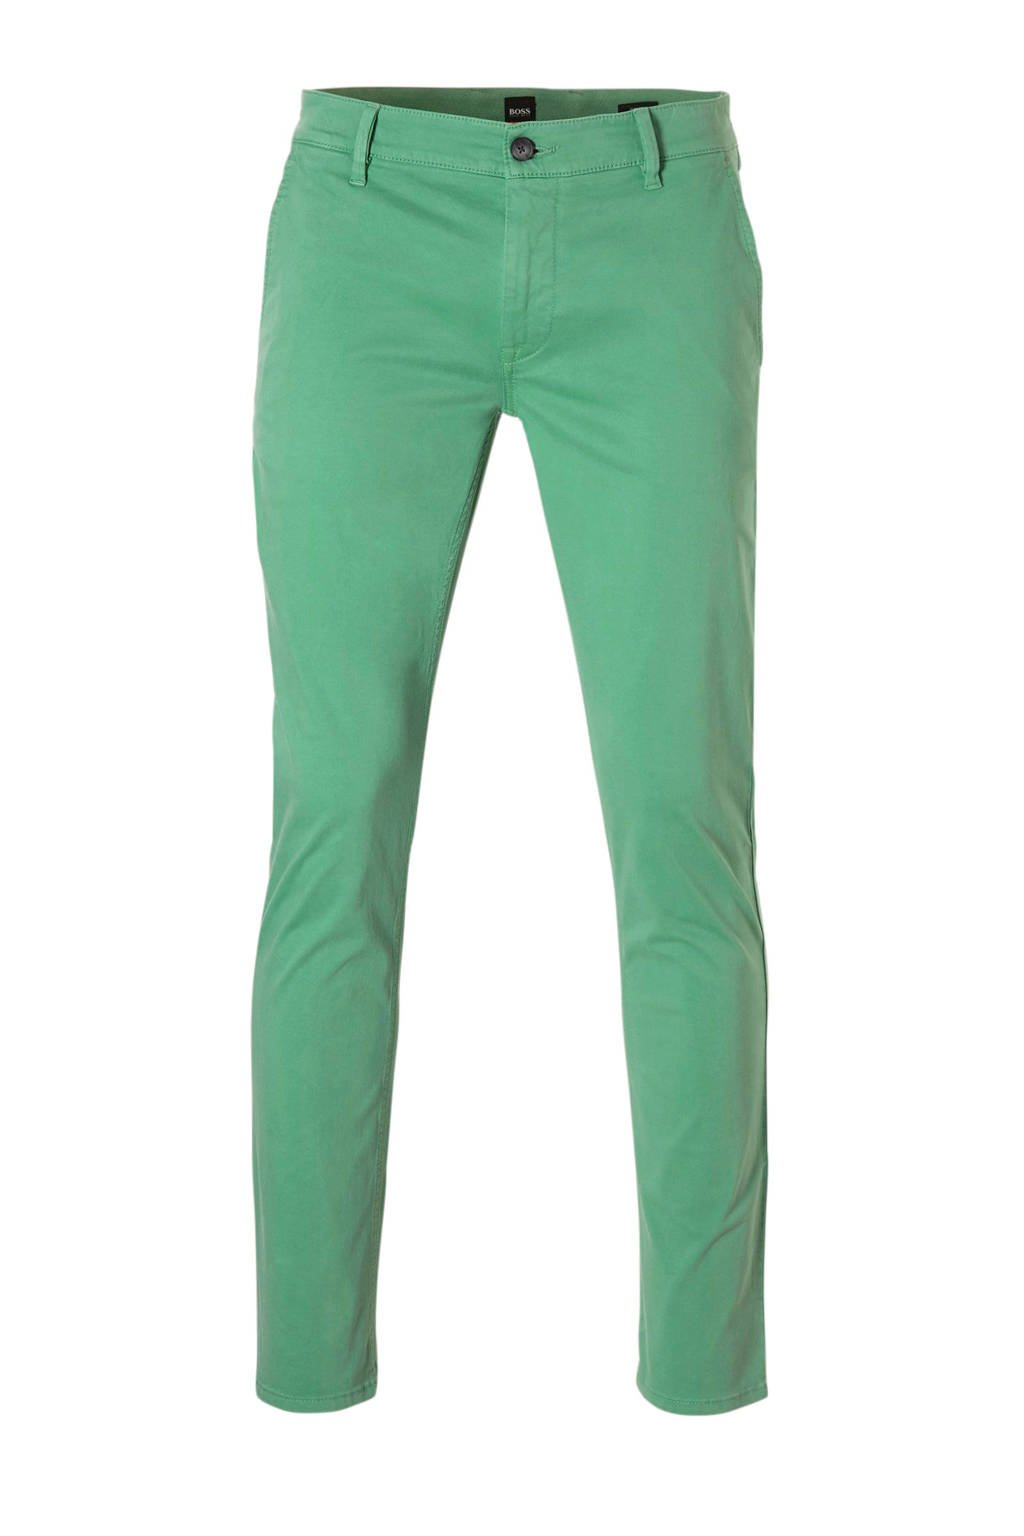 Boss Casual slim fit chino, Open Green